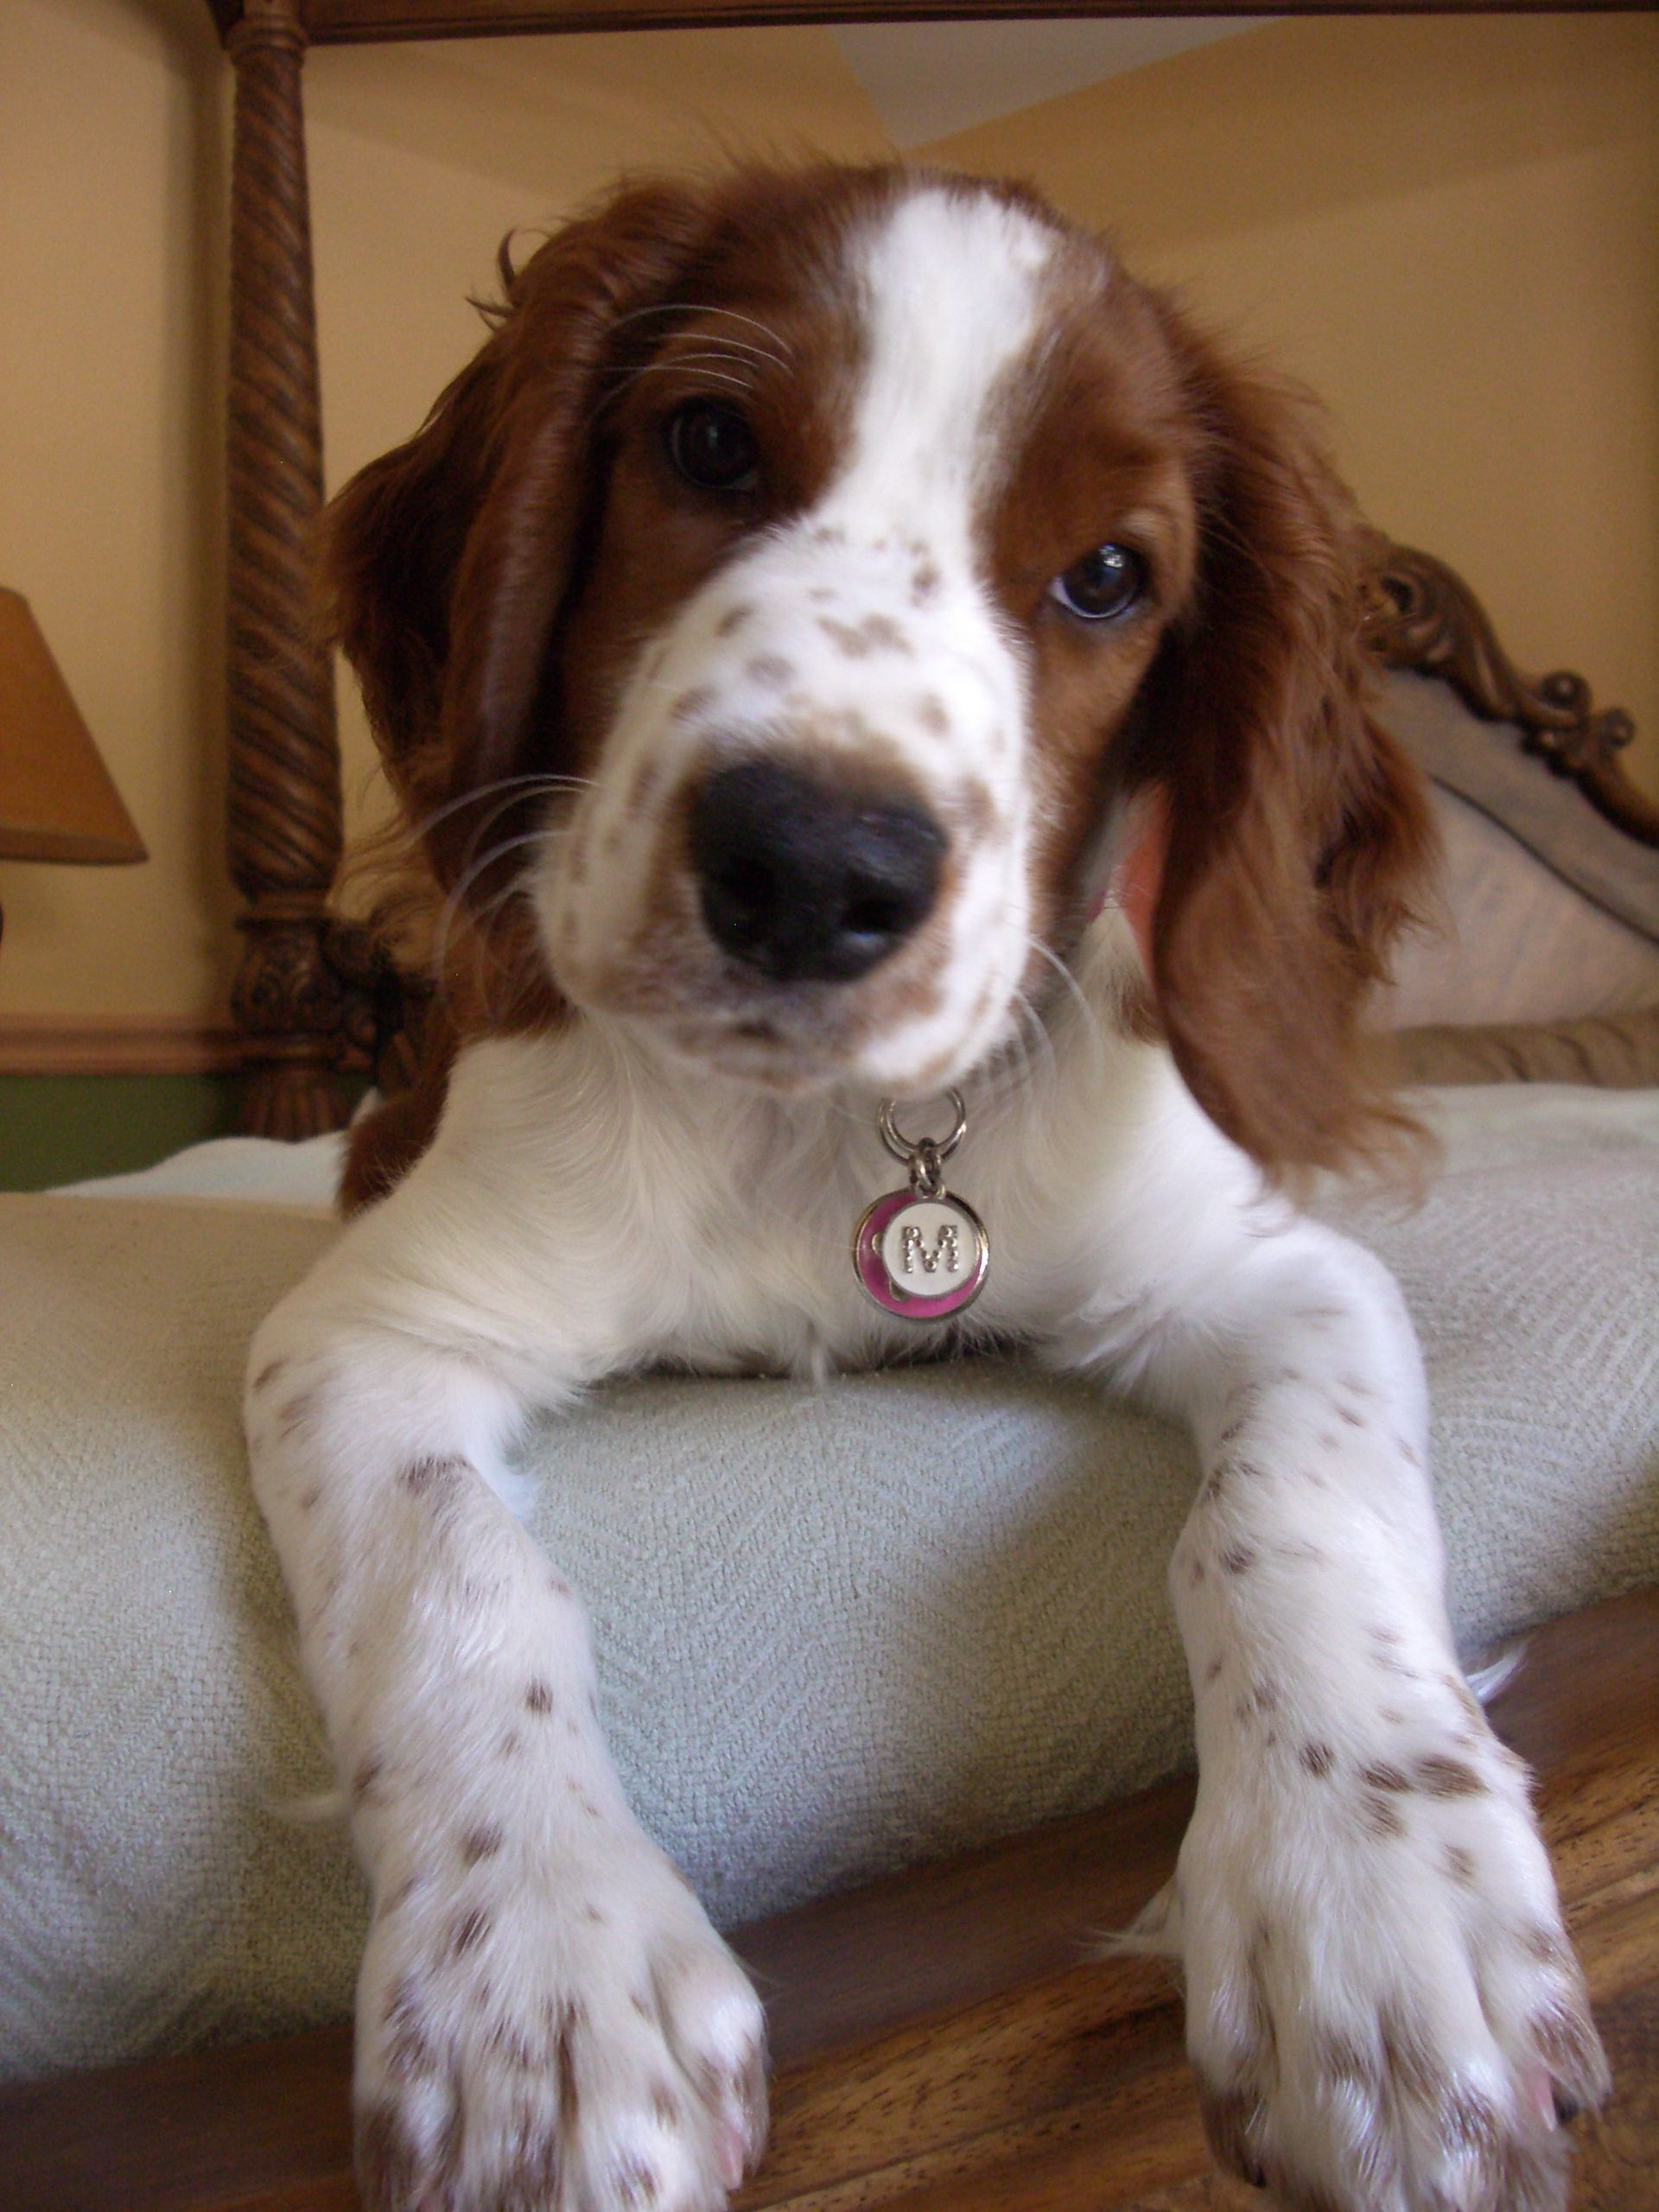 I Want This Dog Reminds Me Of Brewster Dogs Easiest Dogs To Train Welsh Springer Spaniel